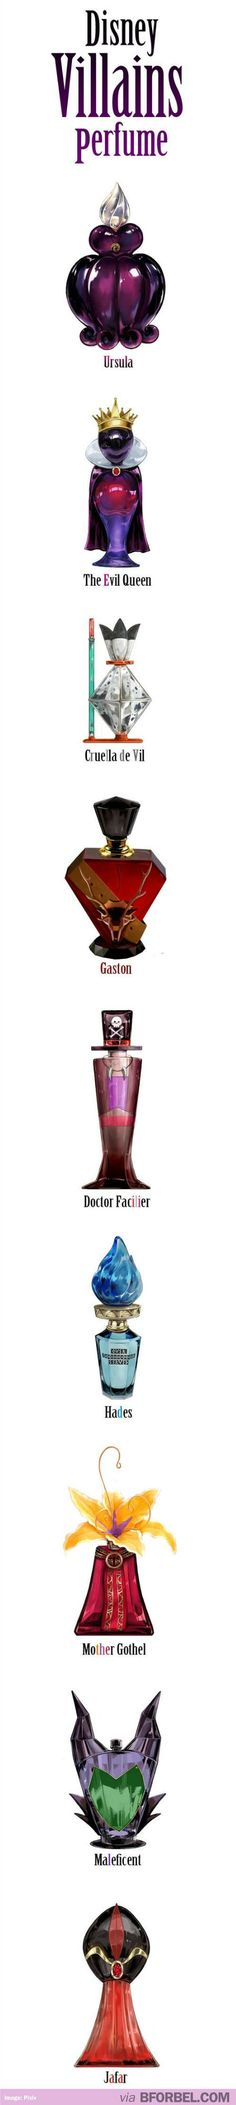 These are amazing villain inspired perfume bottles!! Is it wrong that I want all of them?!